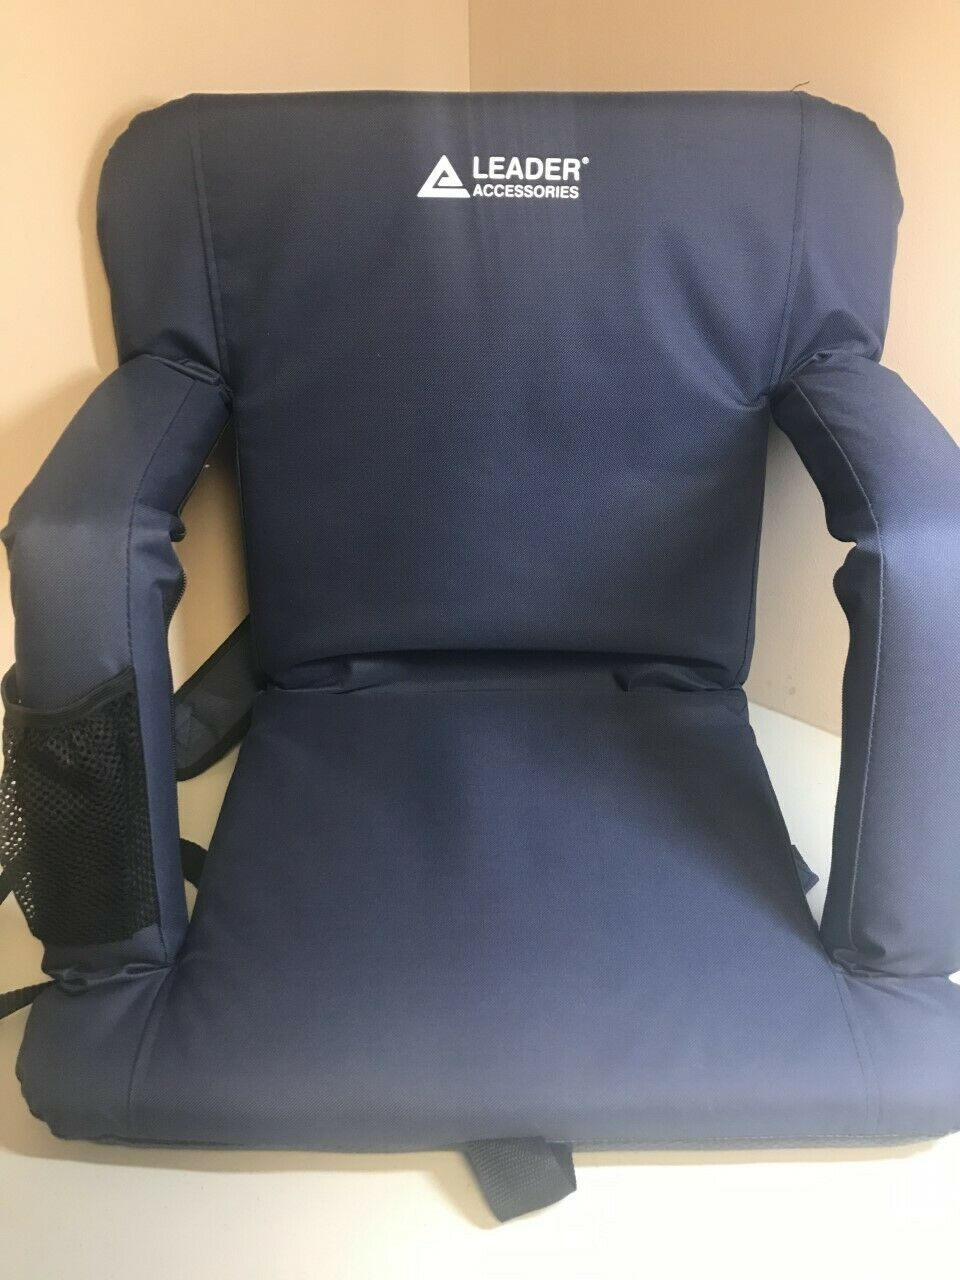 Leader Accessories Stadium Seat Cozy Portable Reclining Chair, Navy, w  DEFECT